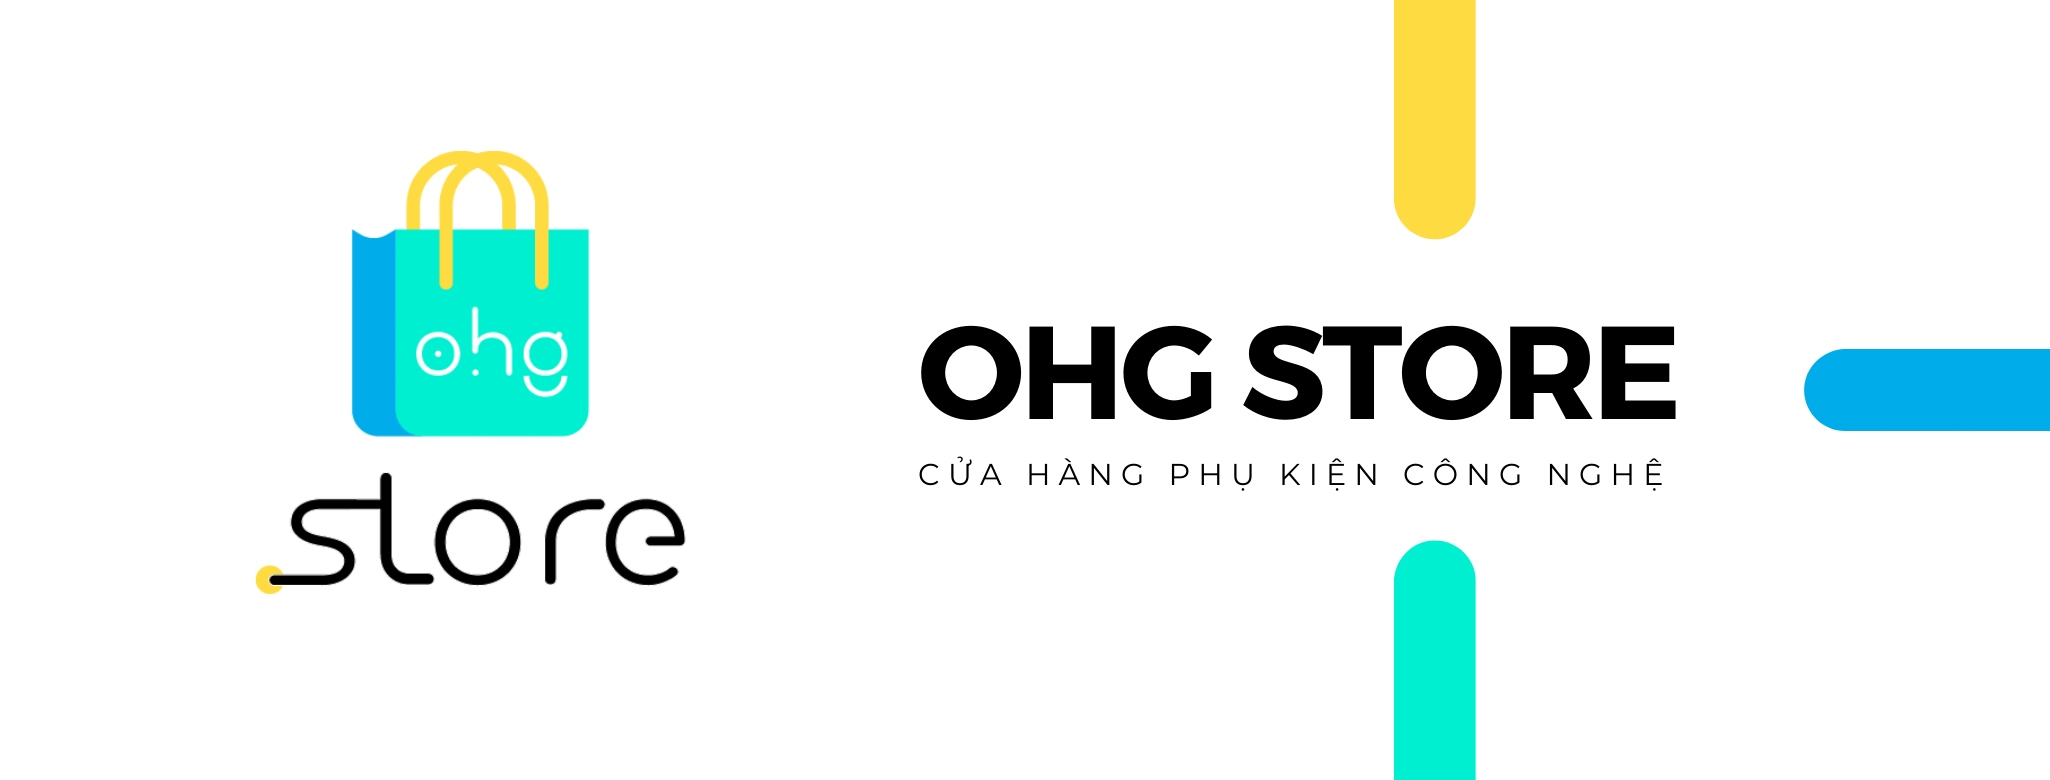 OHG Store (@ohgstore) Cover Image